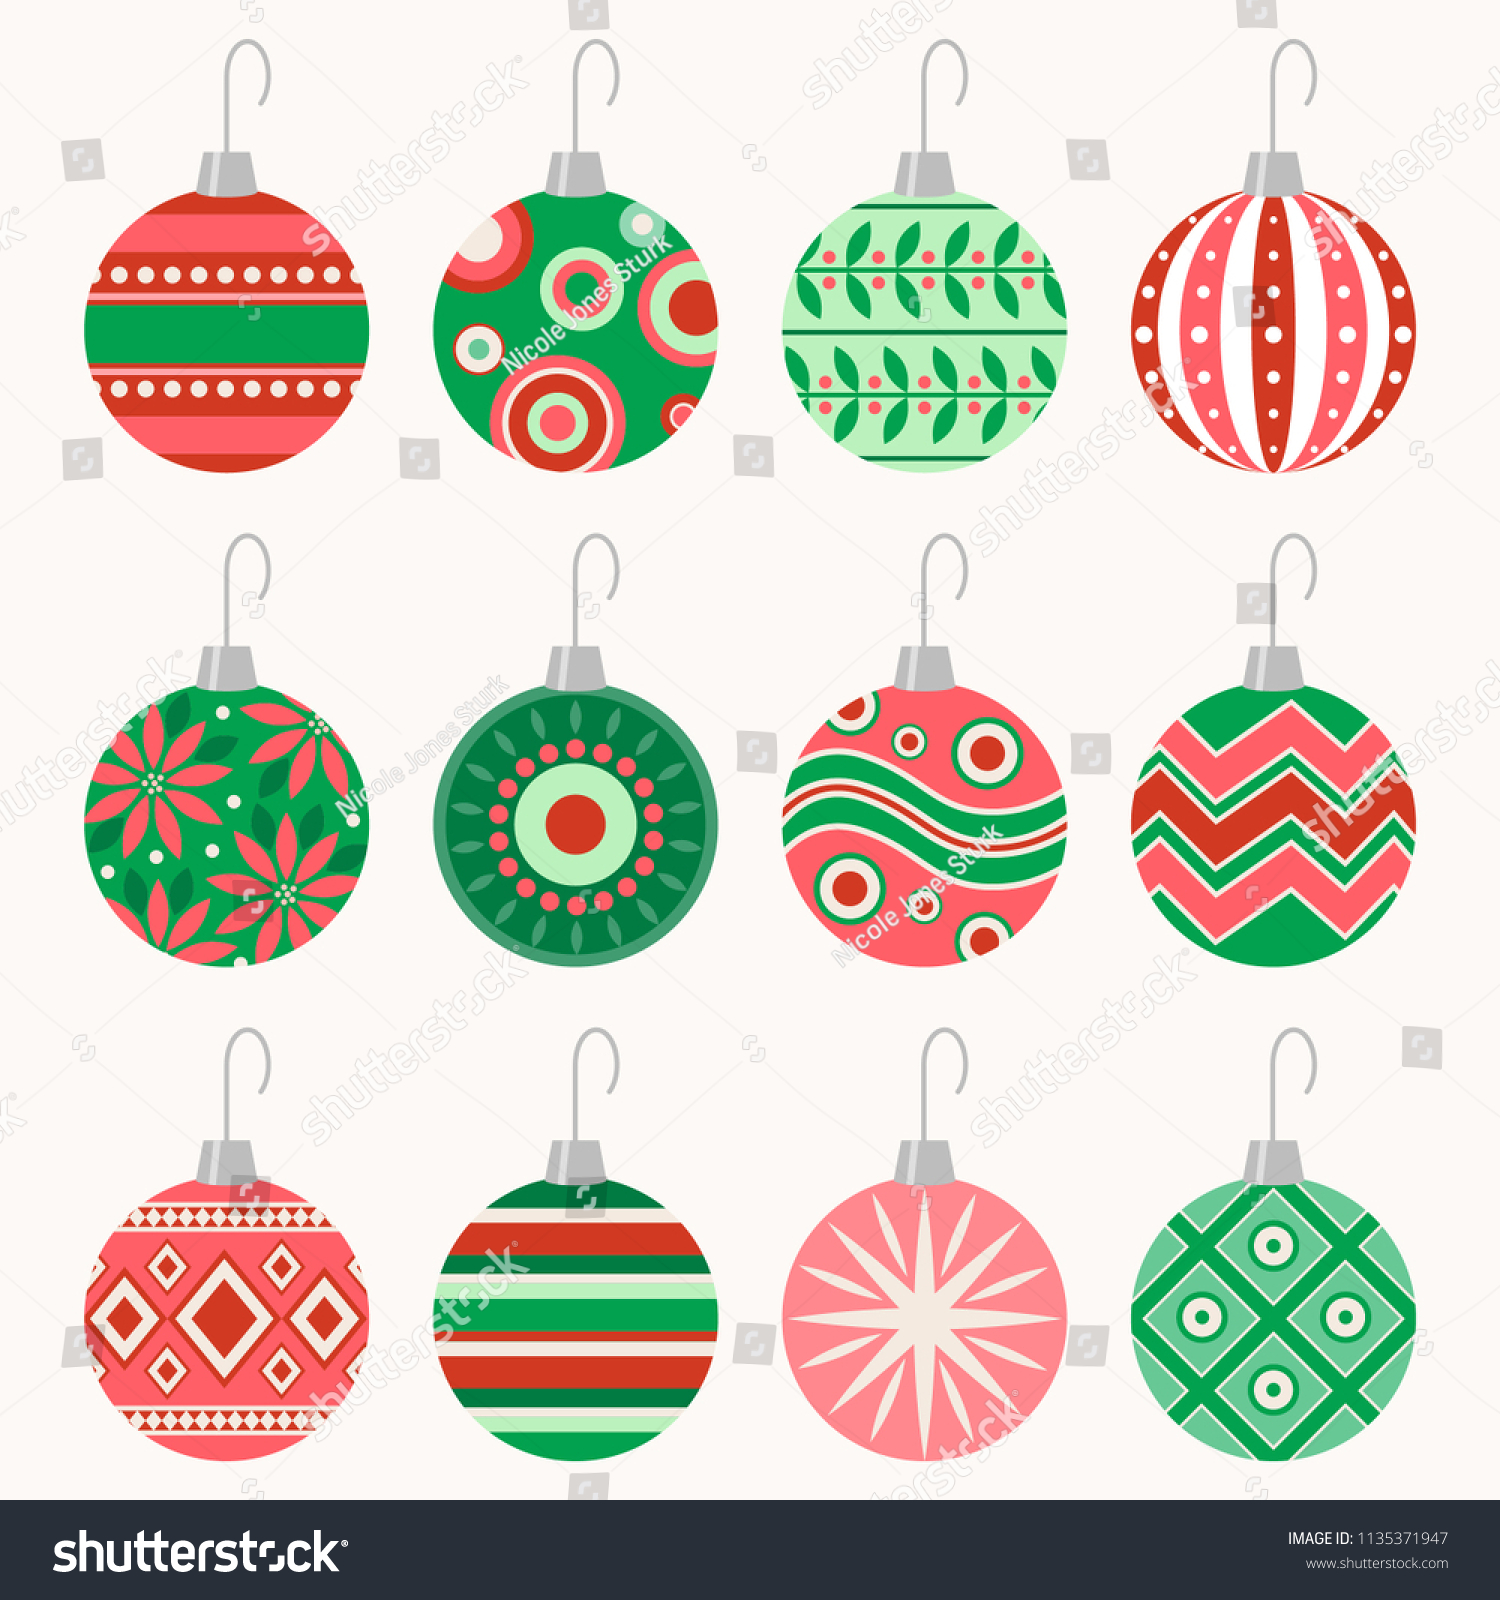 stock-vector-set-of-patterned-vector-christmas-ball-ornaments-with-hooks-in-vintage-red-and-green-color-scheme-1135371947.jpg